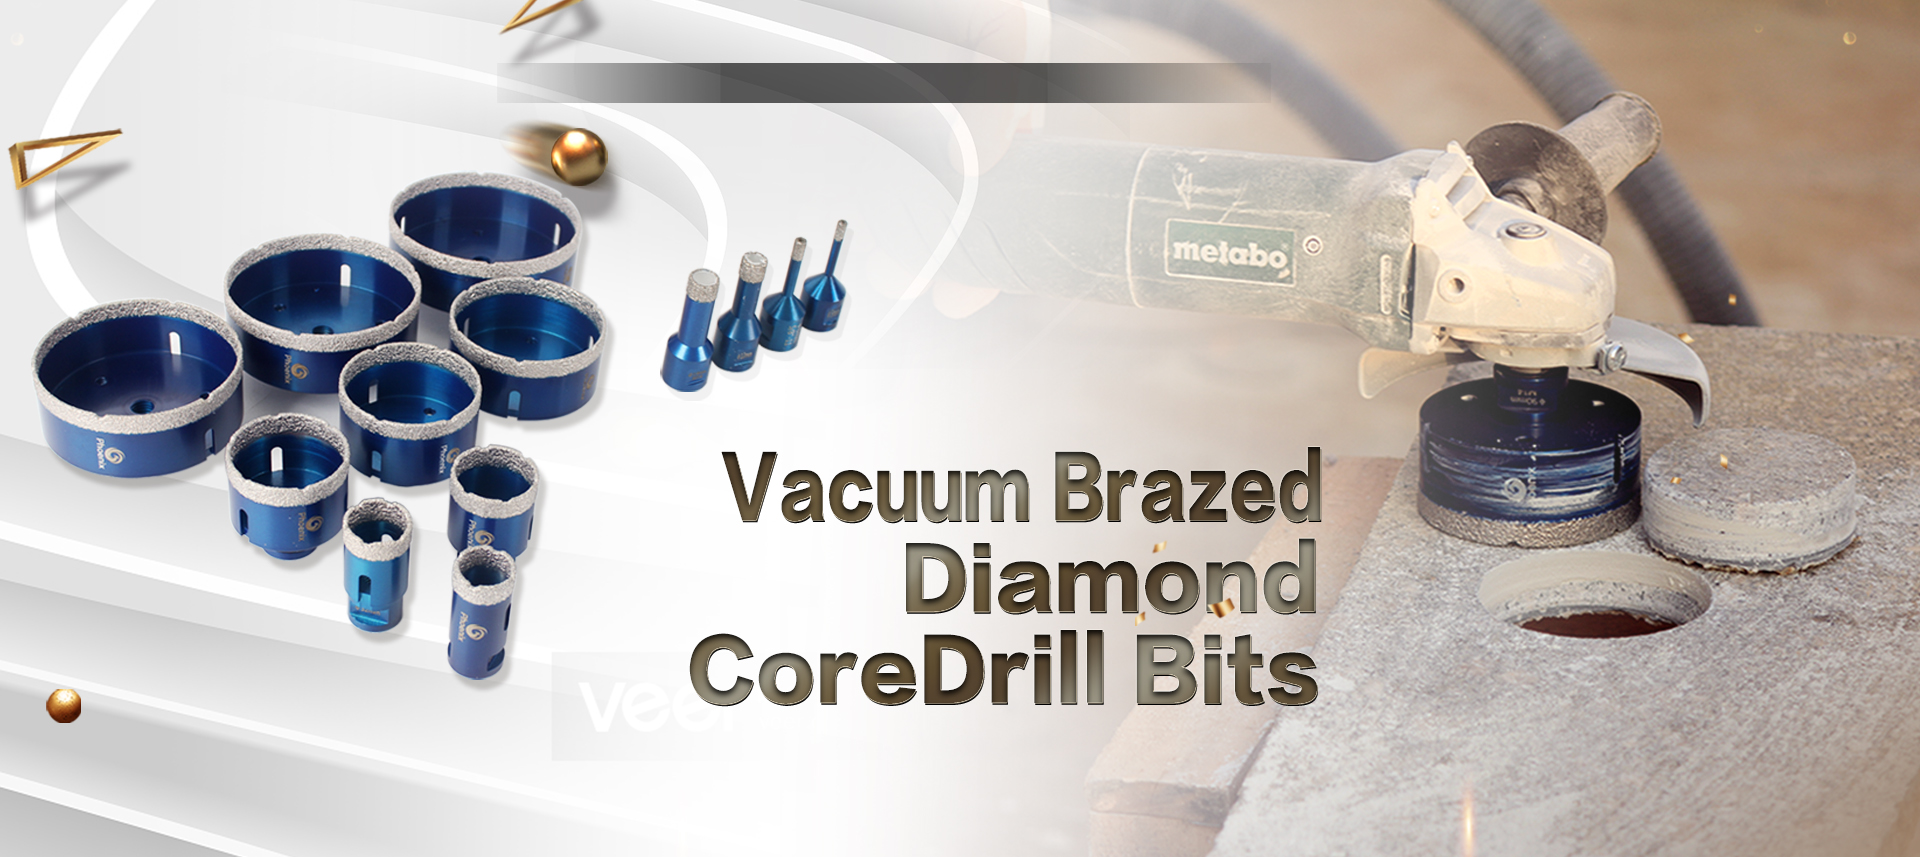 Raizi Vacuum Brazed Diamond Core Dril bits